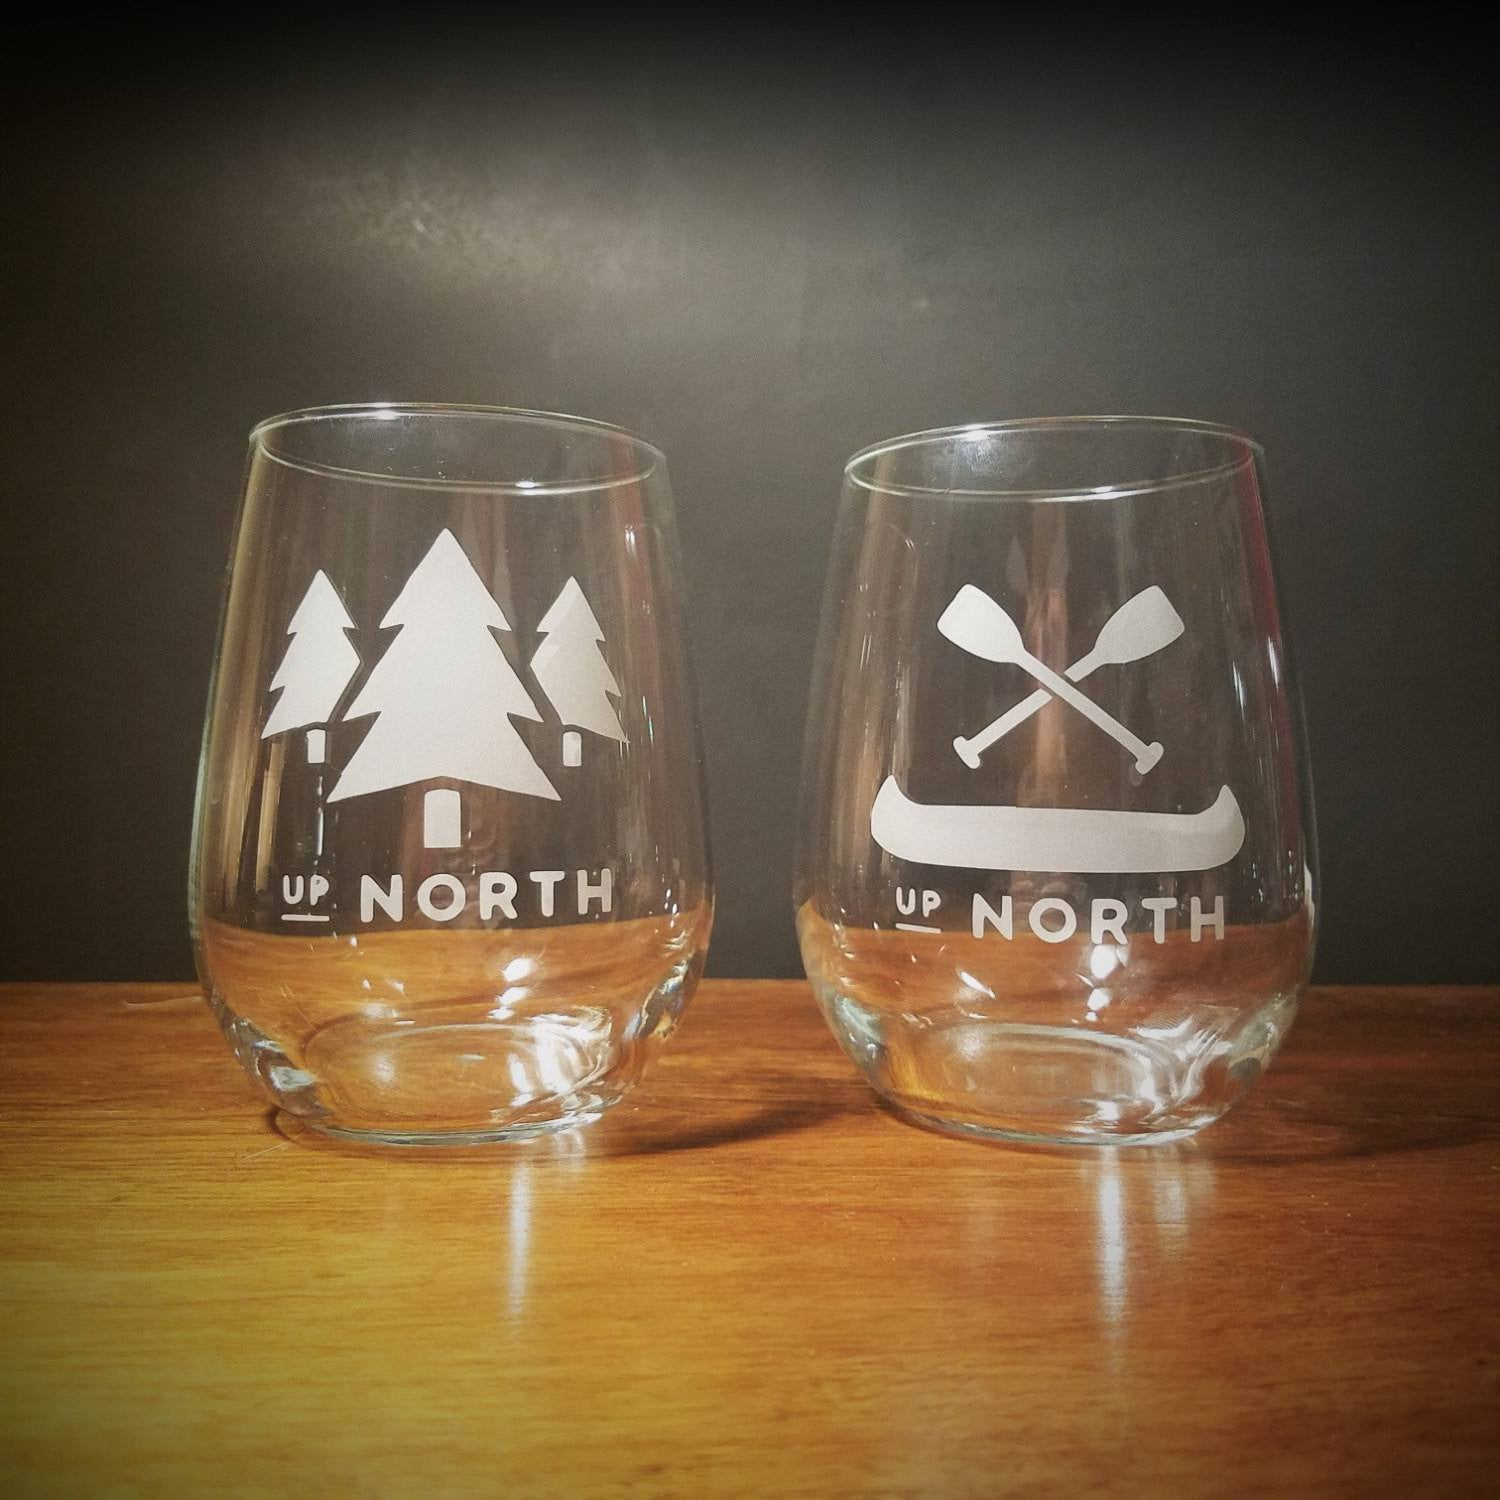 BazaarMPLS, TaylorCathleen - Up North Cabin Stemless Wine Glass, TaylorCathleen, , Shop Minnesota Online, Shop Local MN